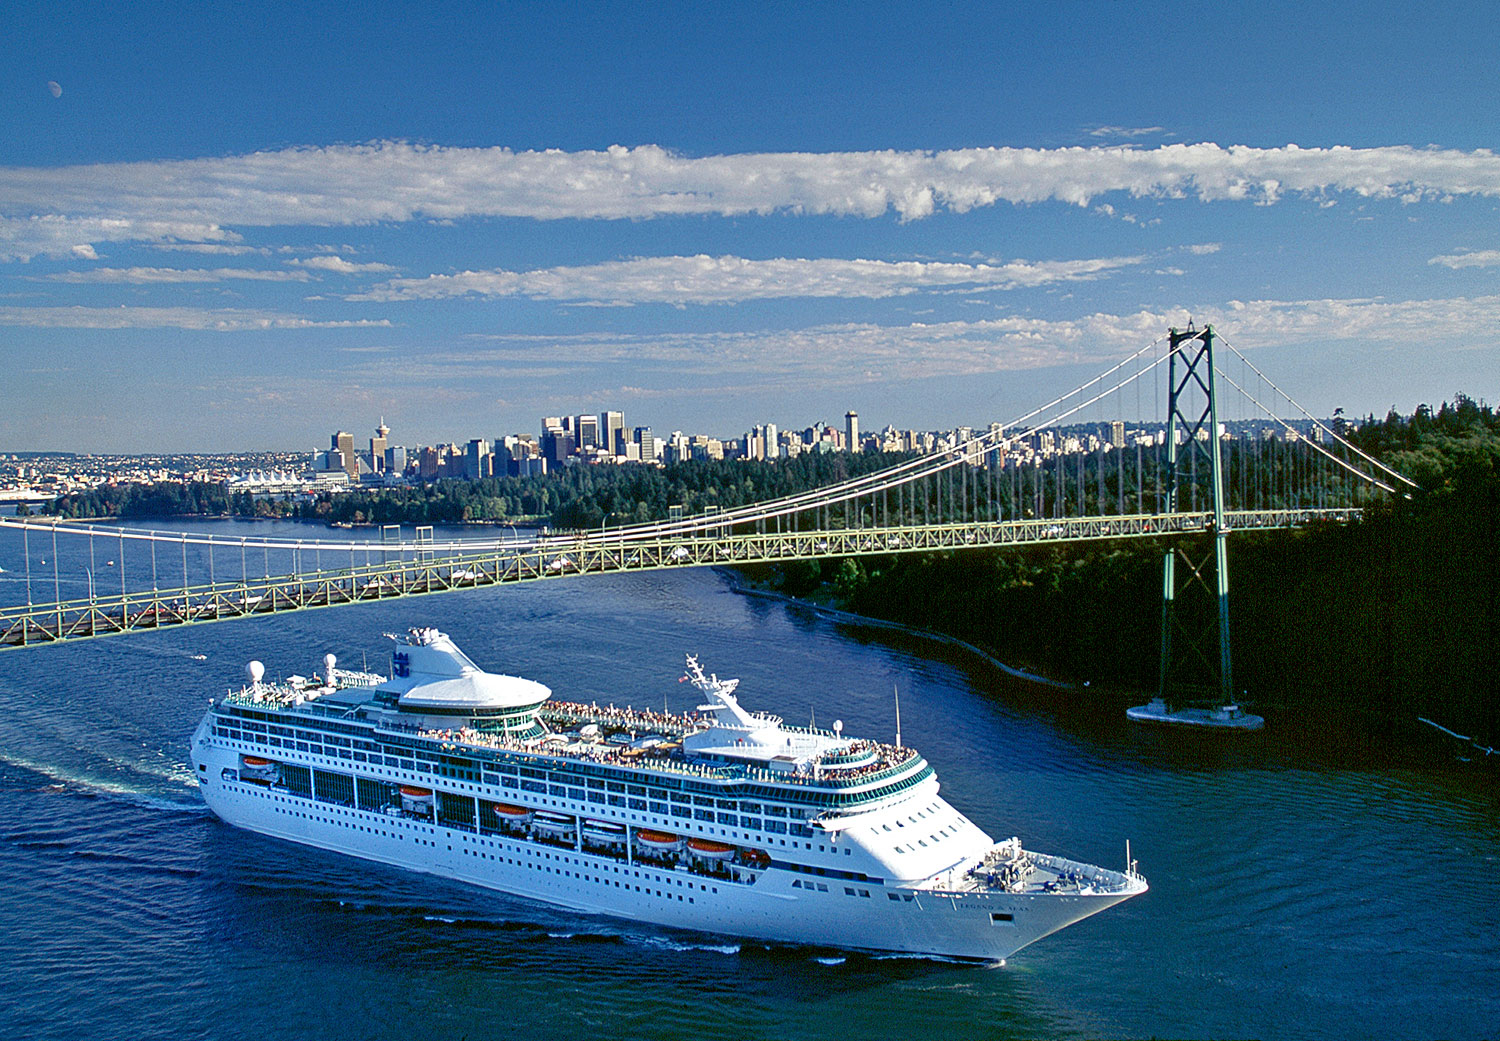 Aerial photo of Legend of the Seas departing Vancouver, BC